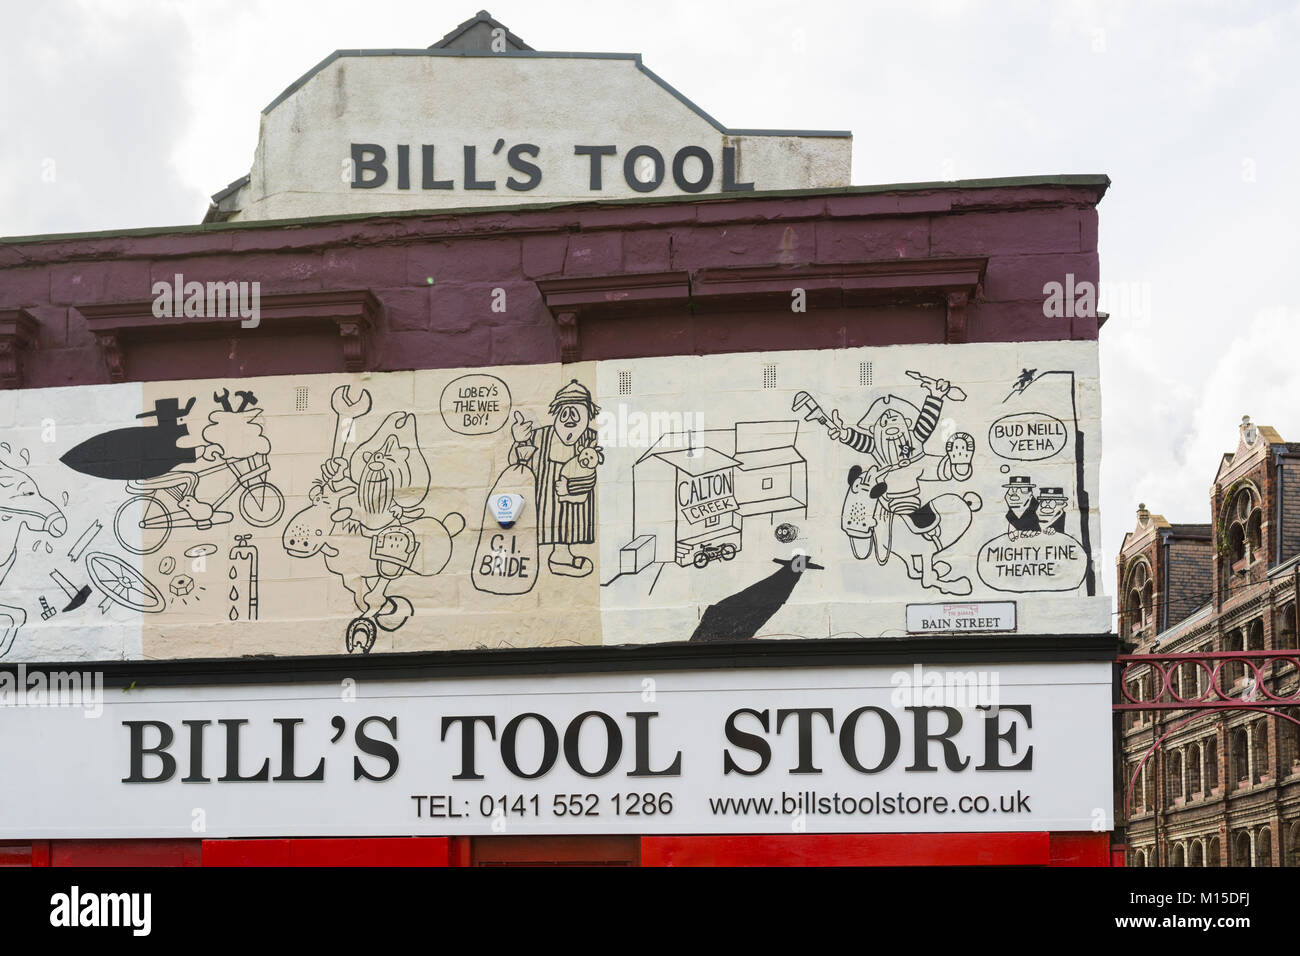 Bill's Tool store and Lobey Dosser mural at The Barras, Gallowgate, Glasgow, Scotland, UK - Stock Image